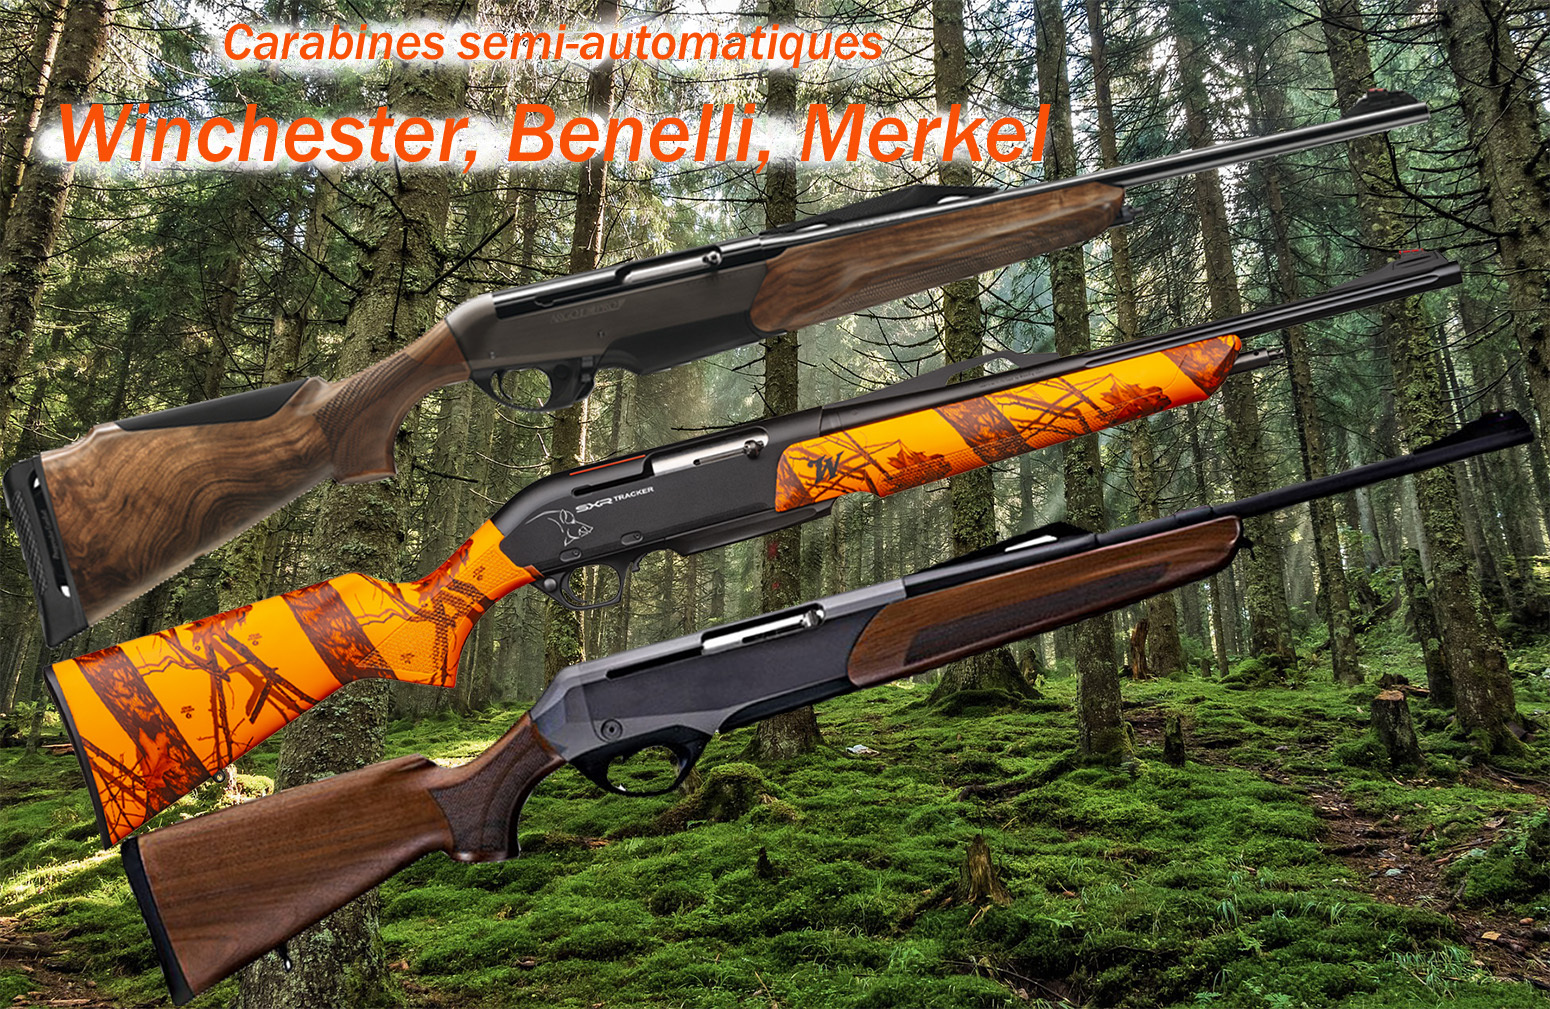 carabines-semi-automatiques-benelli-boulouchasse